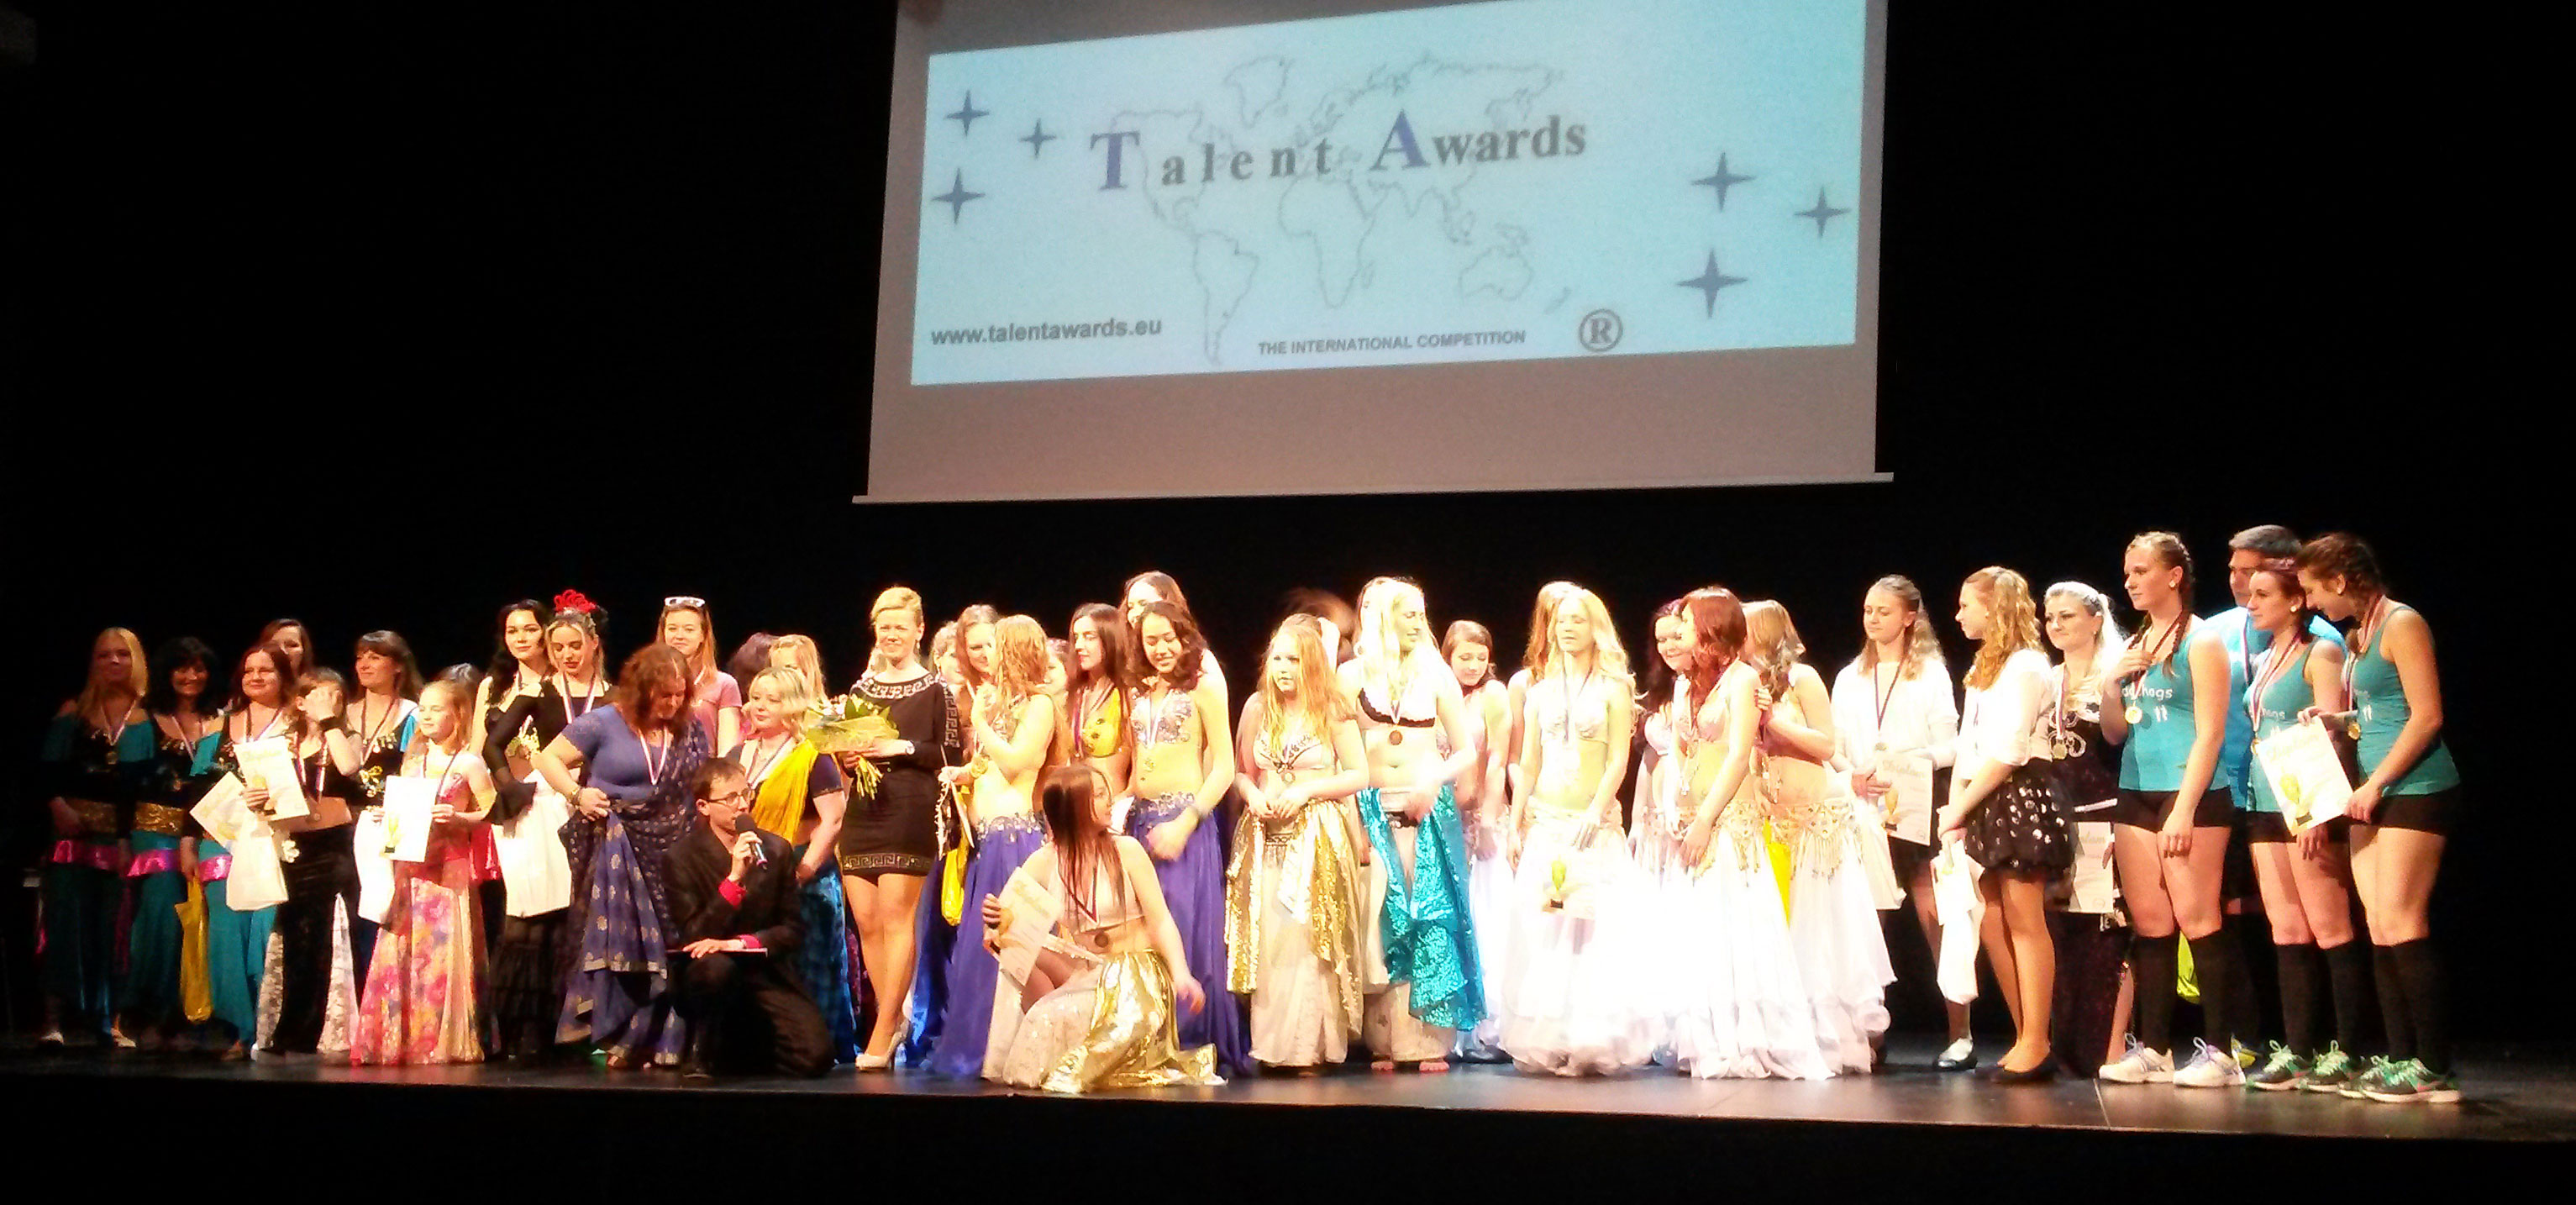 Talent Awards 2017